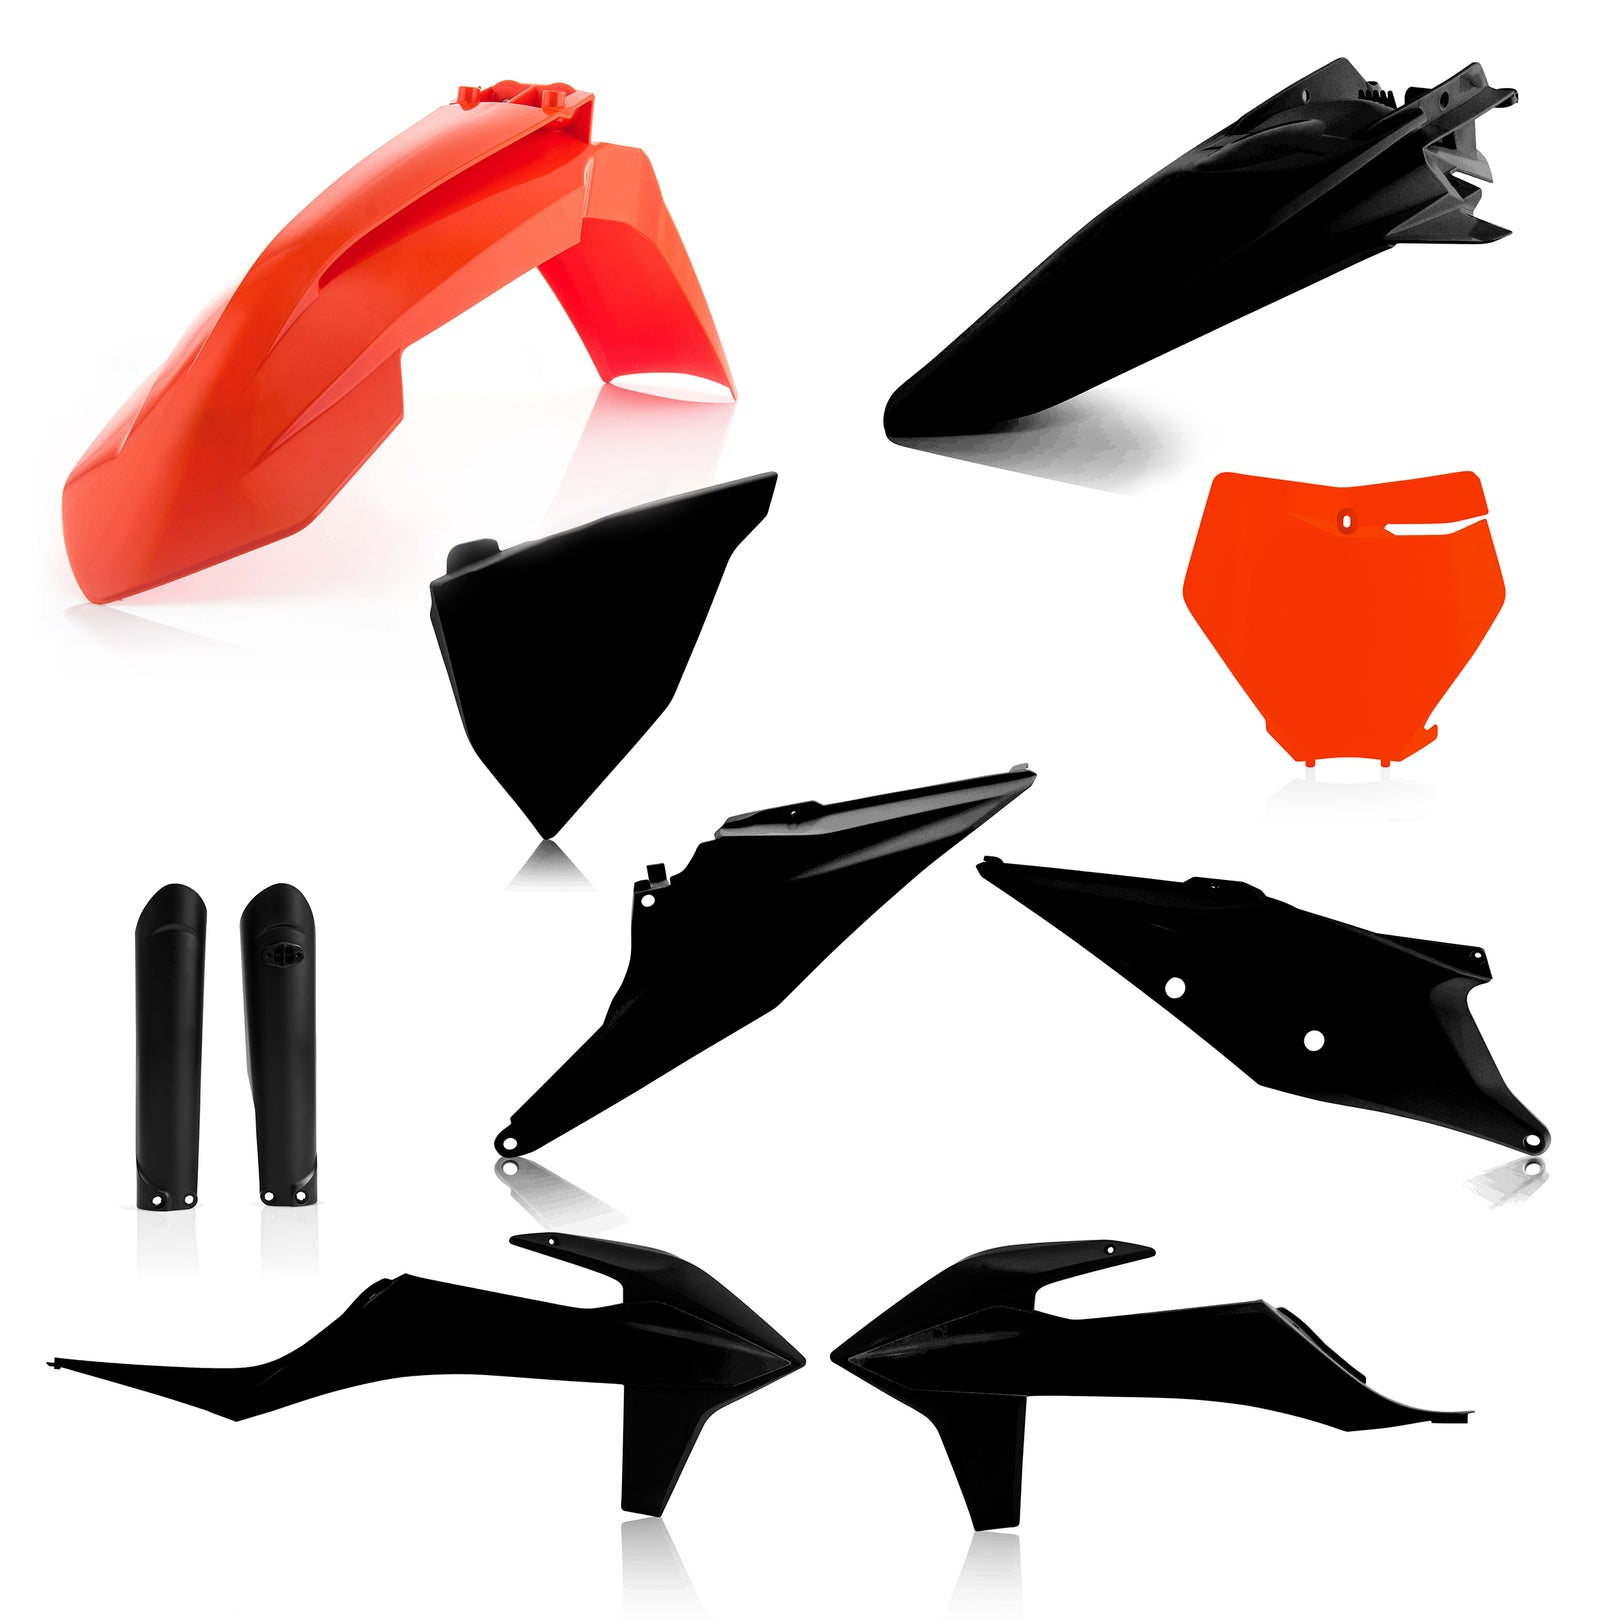 KTM FULL PLASTIC KIT -ORANGE/BLACK - SX125-250, SX-F250-450, XC-F250-450: 19-20, XC250/300: 19, XC250tpi/300tpi: 20 - Acerbis